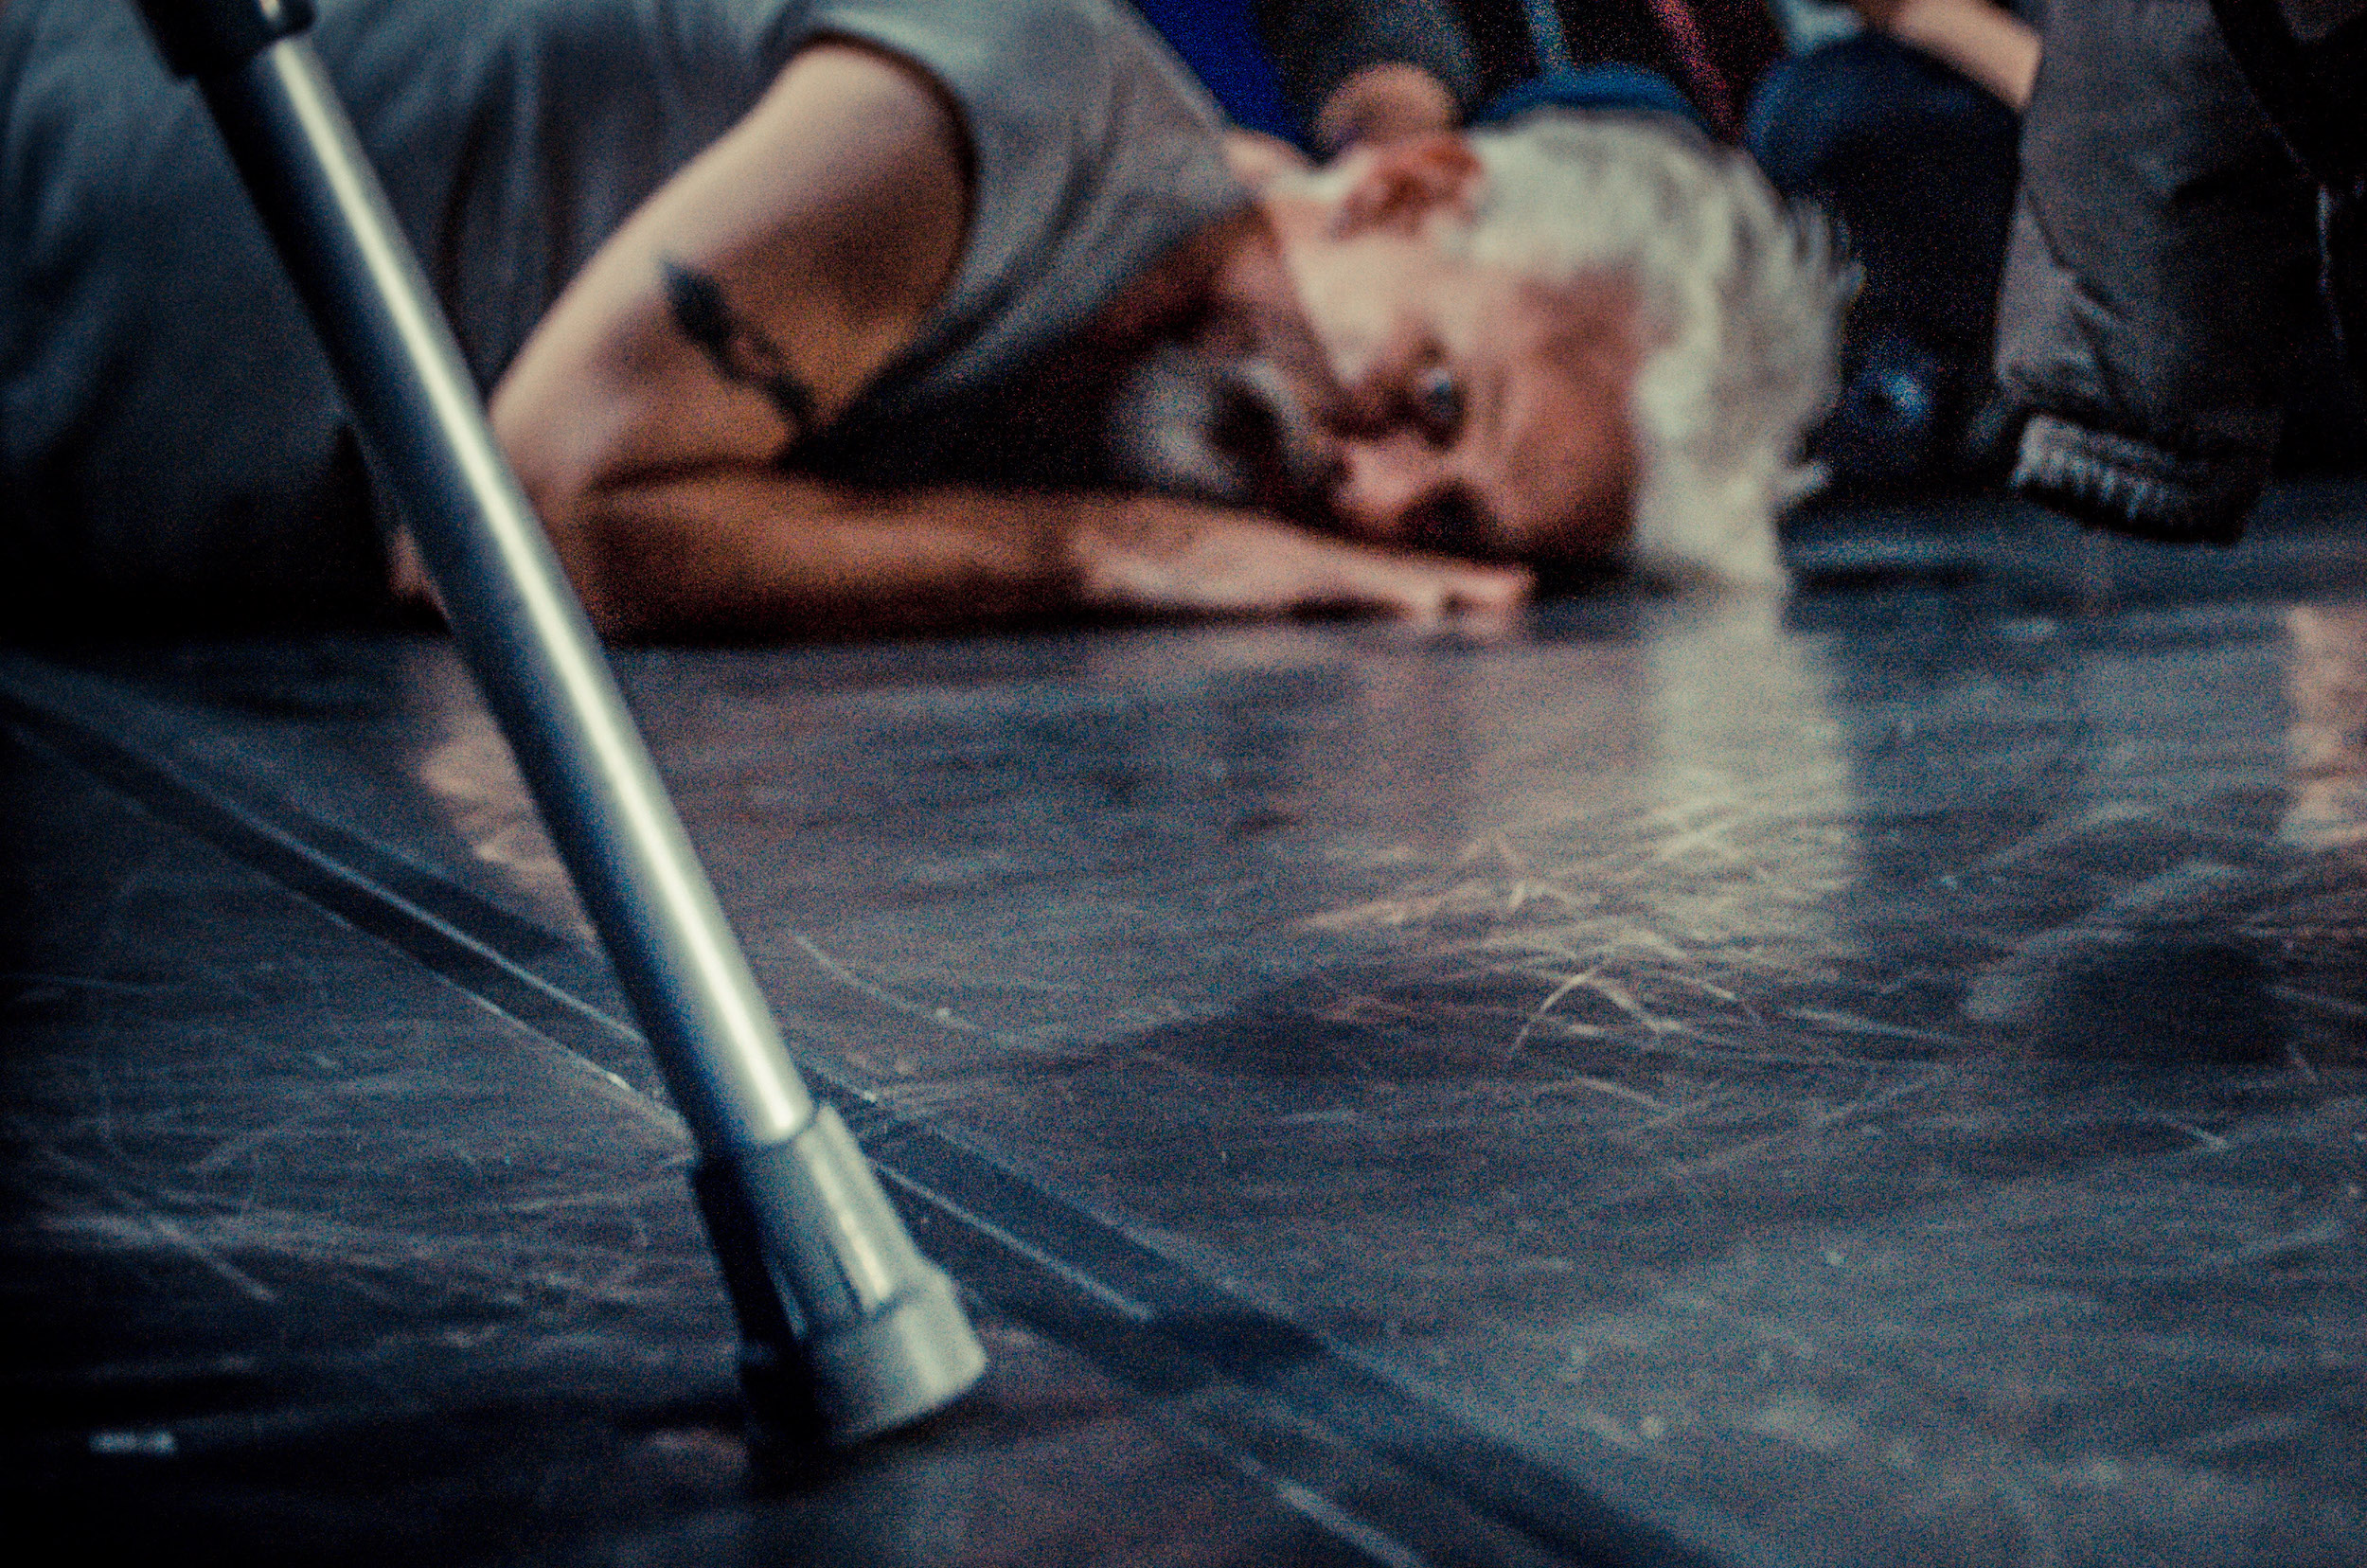 Curtis (out of focus in background) lies facedown on dance floor, looks toward camera. Base of a crutch in foreground. (photo: Robbie Sweeny)